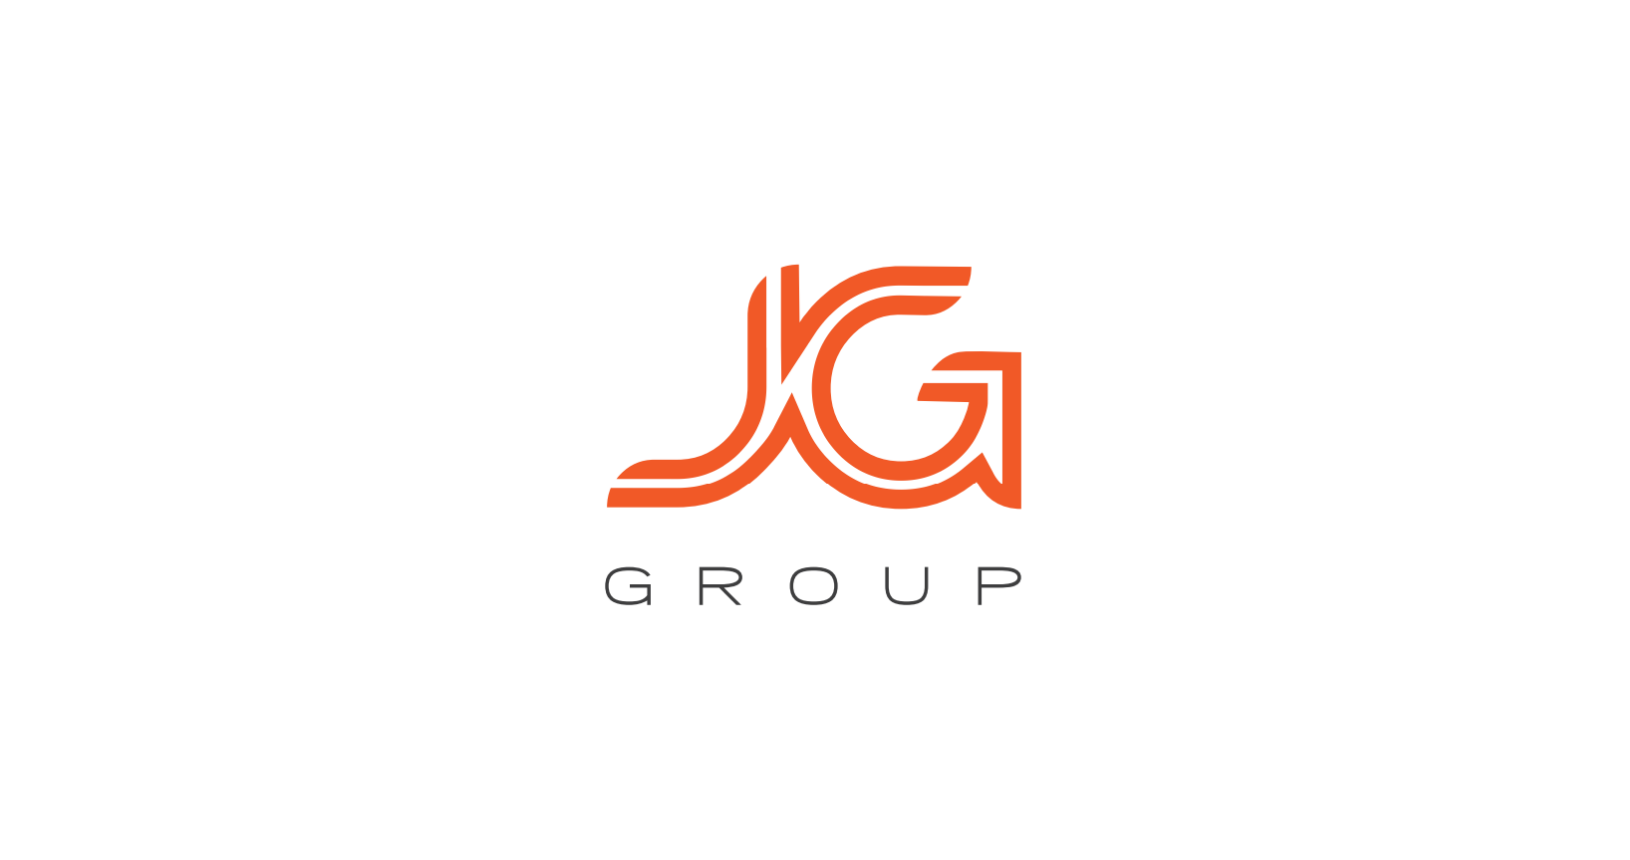 jg-group-logo-01